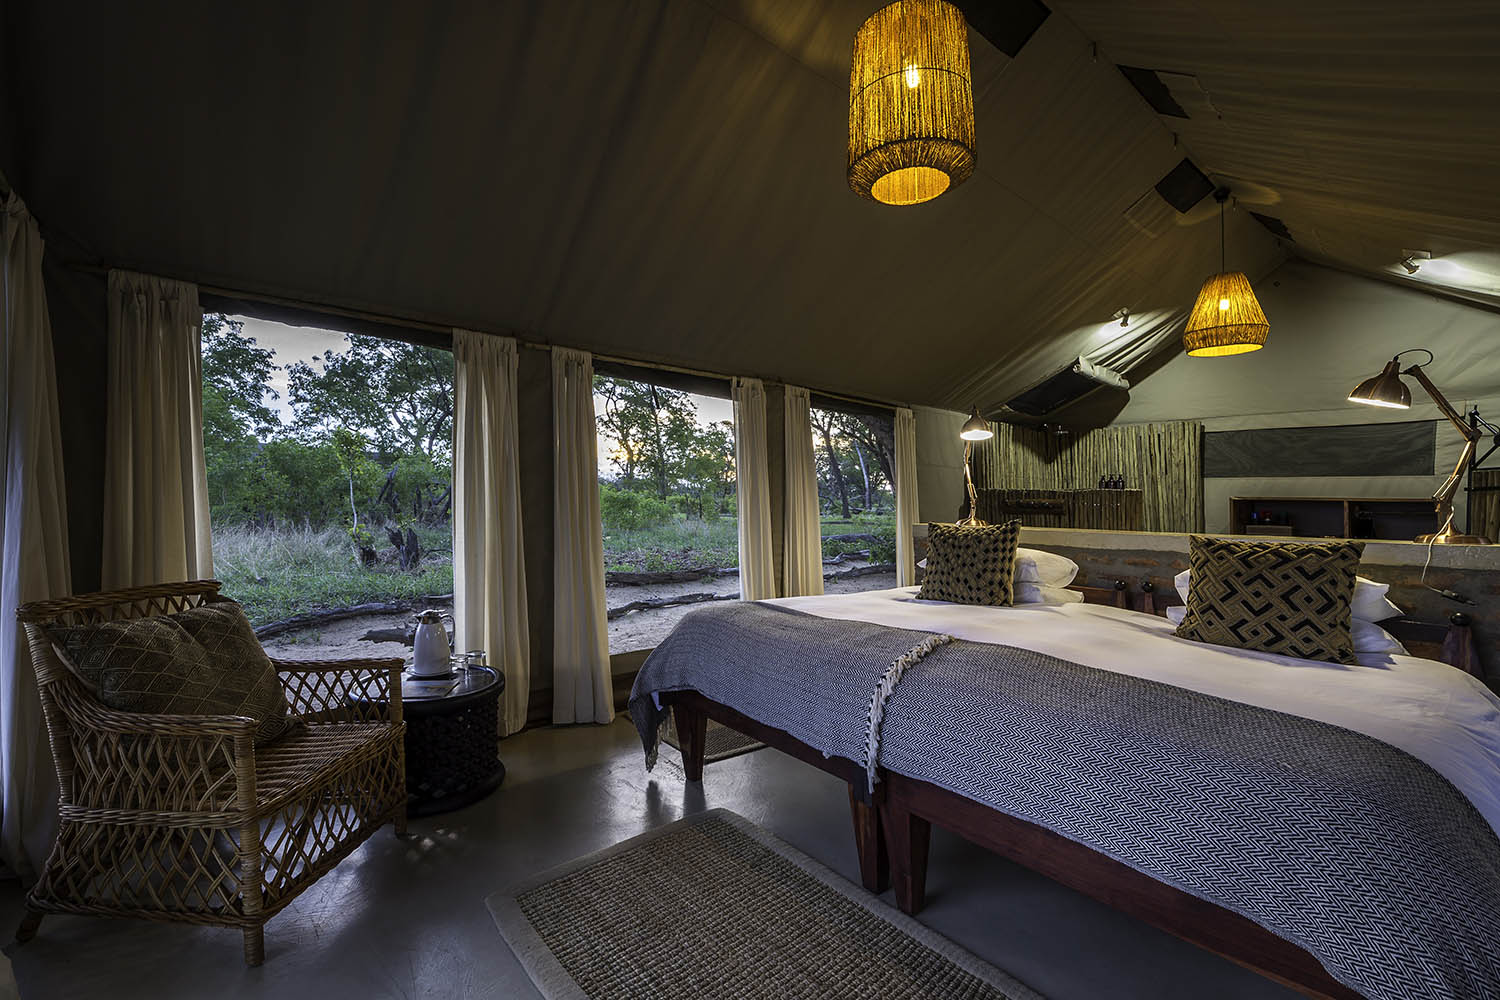 davisons camp hwange-national-park-zimbabwe-lodges-wilderness-classic-safari-bed